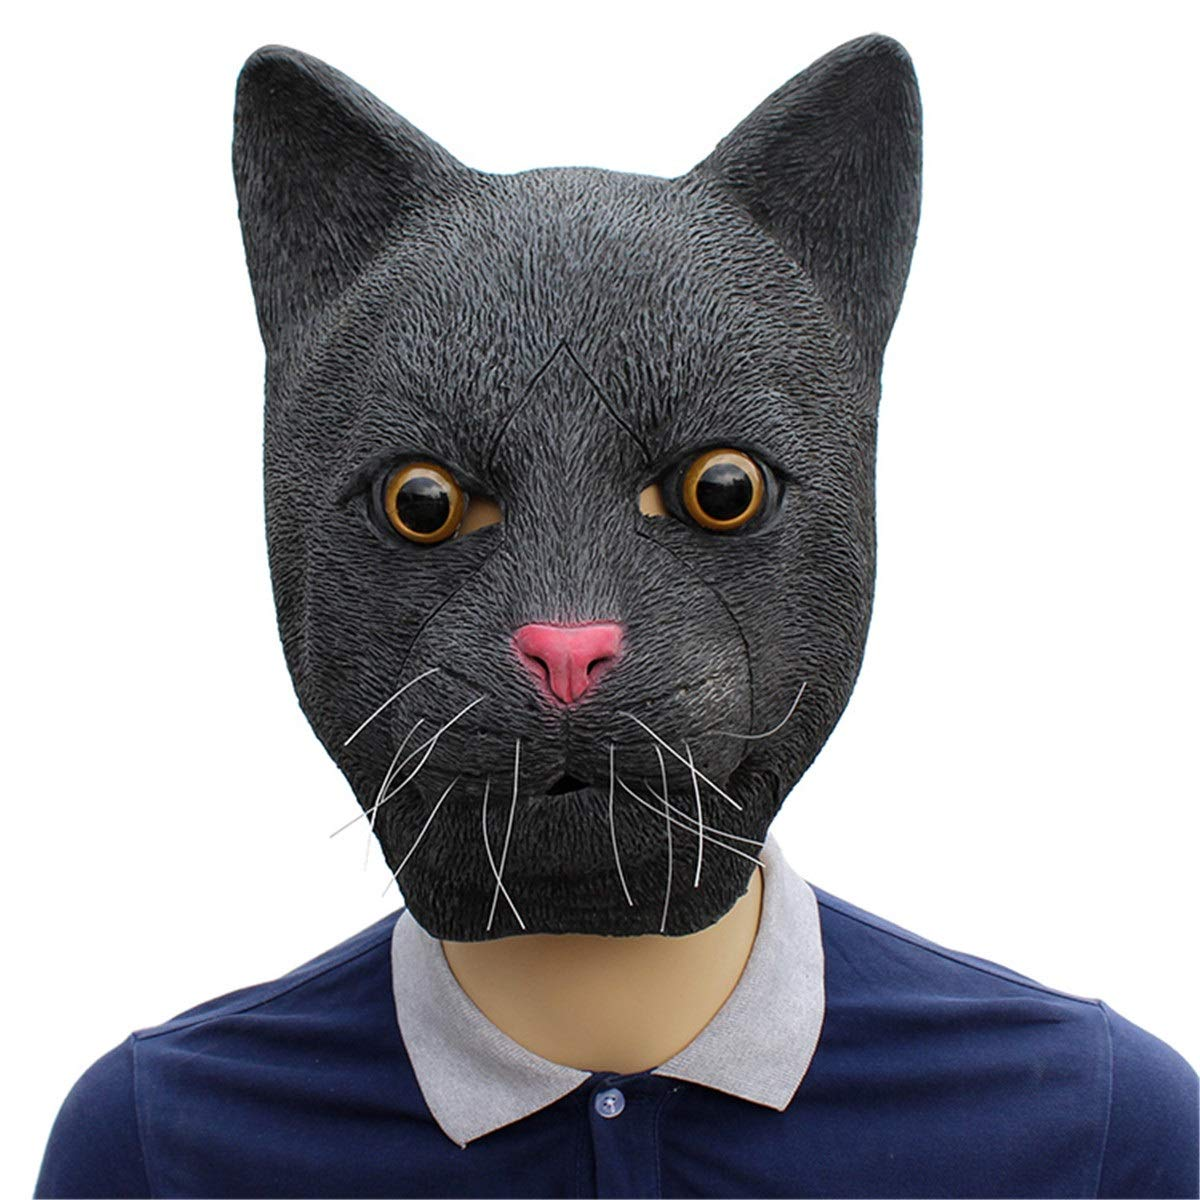 Novelty Halloween Costume Mask Cosplay Party Props Latex Animal Head Mask Adult & Kids Black Cat George Bogle